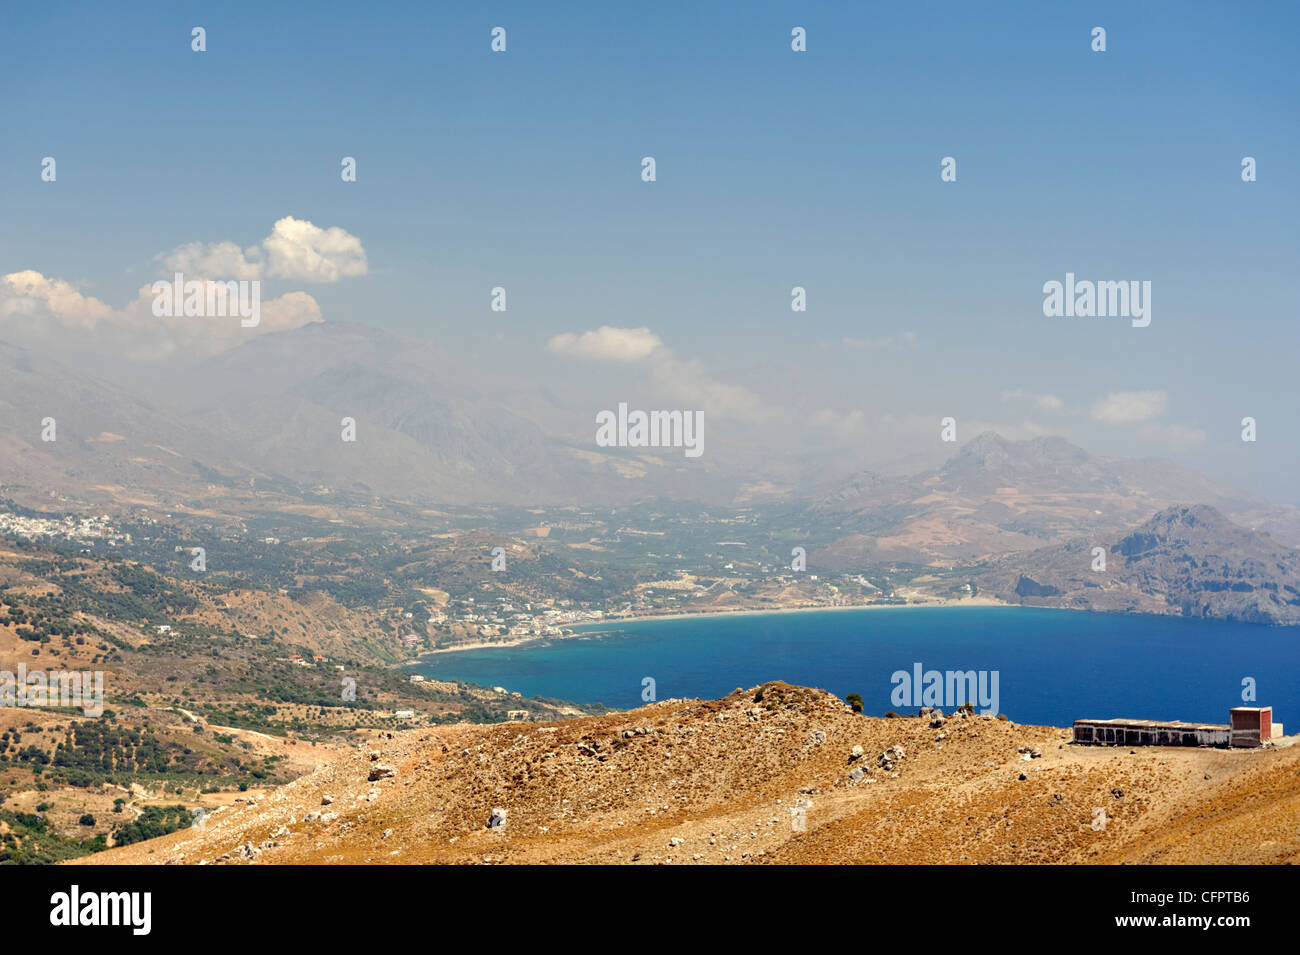 Crete. Greece. View of the resort town of Plakias which is idyllically set with sweeping sandy beach and mountainous - Stock Image